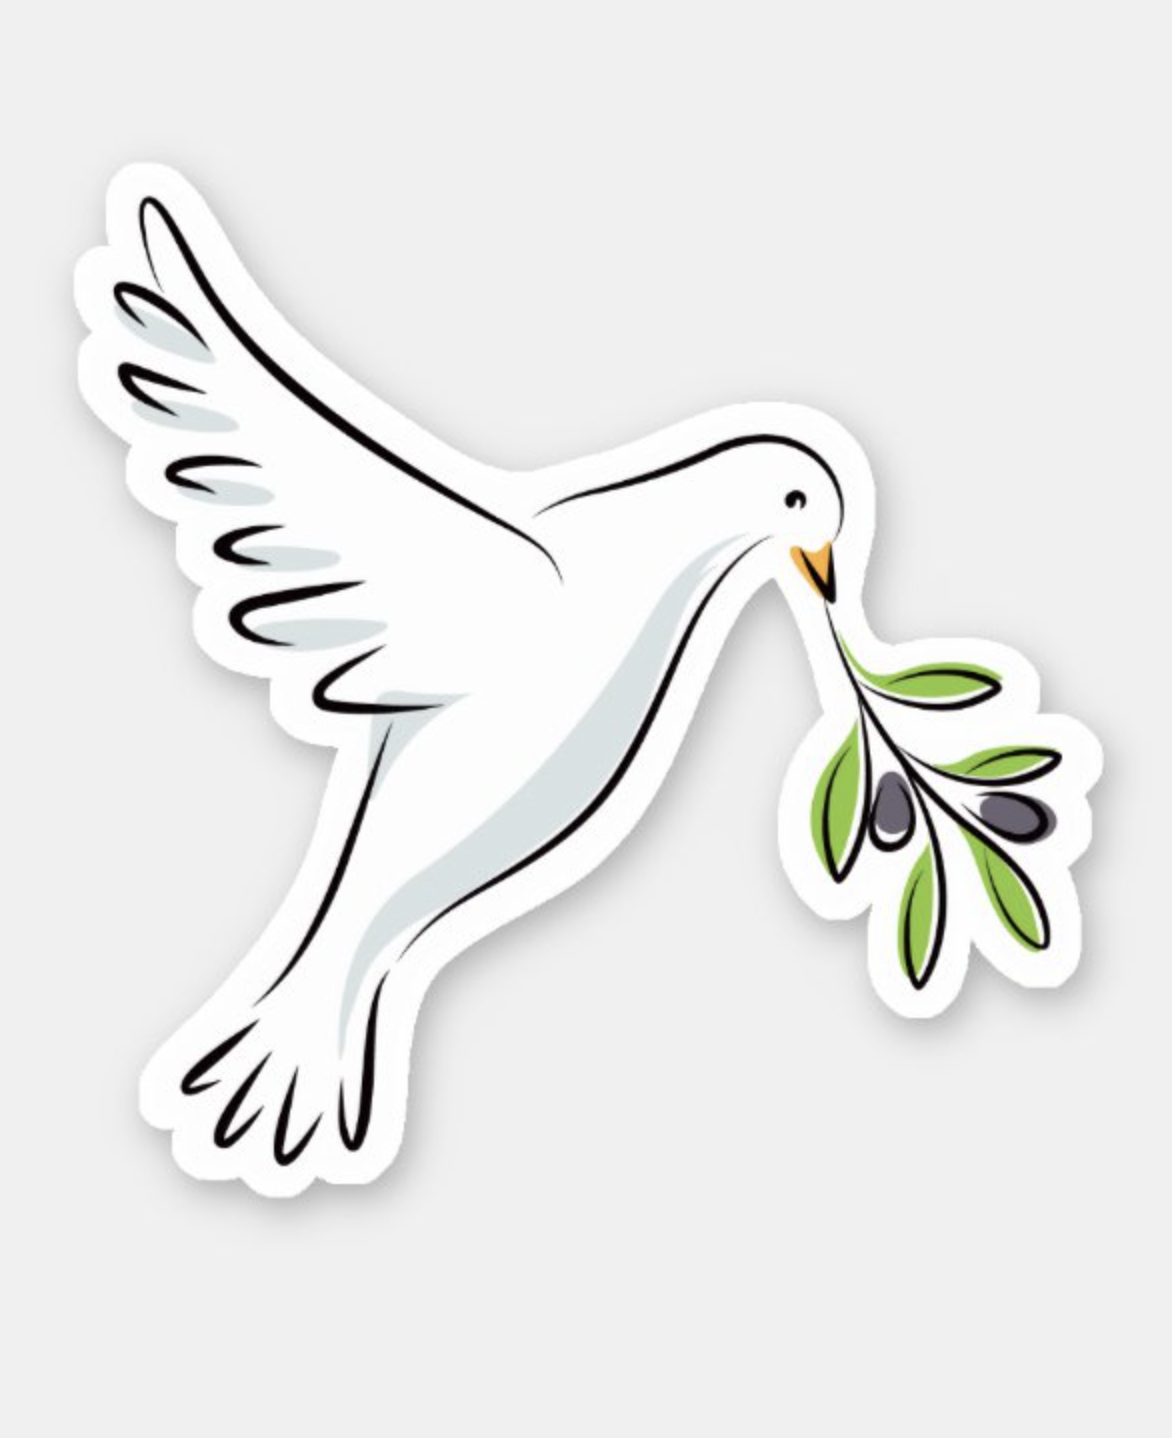 White Peace Dove With Olive Branch Sticker Zazzle Com In 2021 Dove With Olive Branch Peace Dove Dove Images